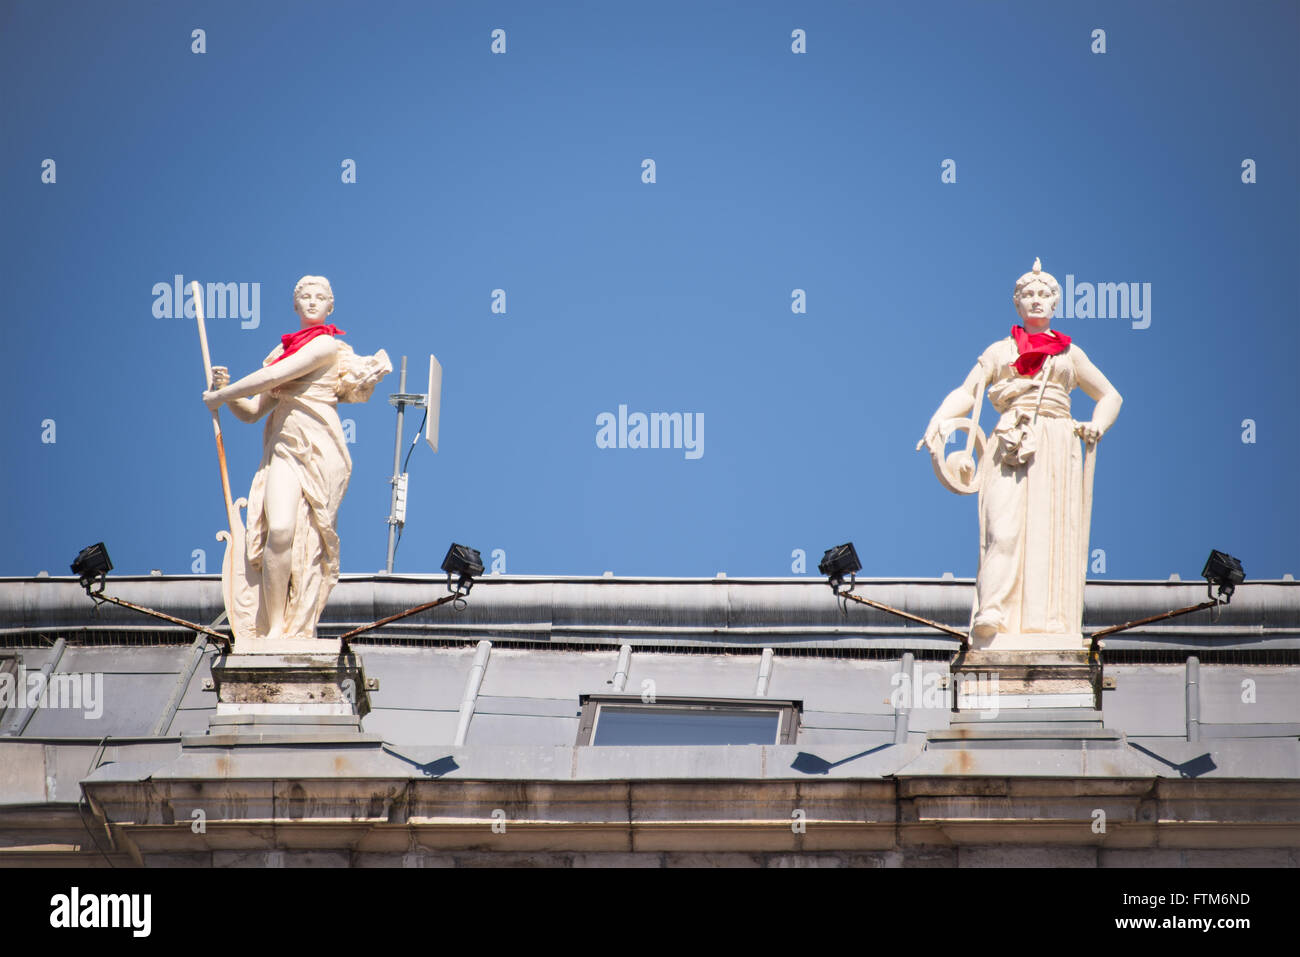 Statues on the roof of the city hall of Bayonne with a red scarf during the Summer festival (Fetes de Bayonne), - Stock Image